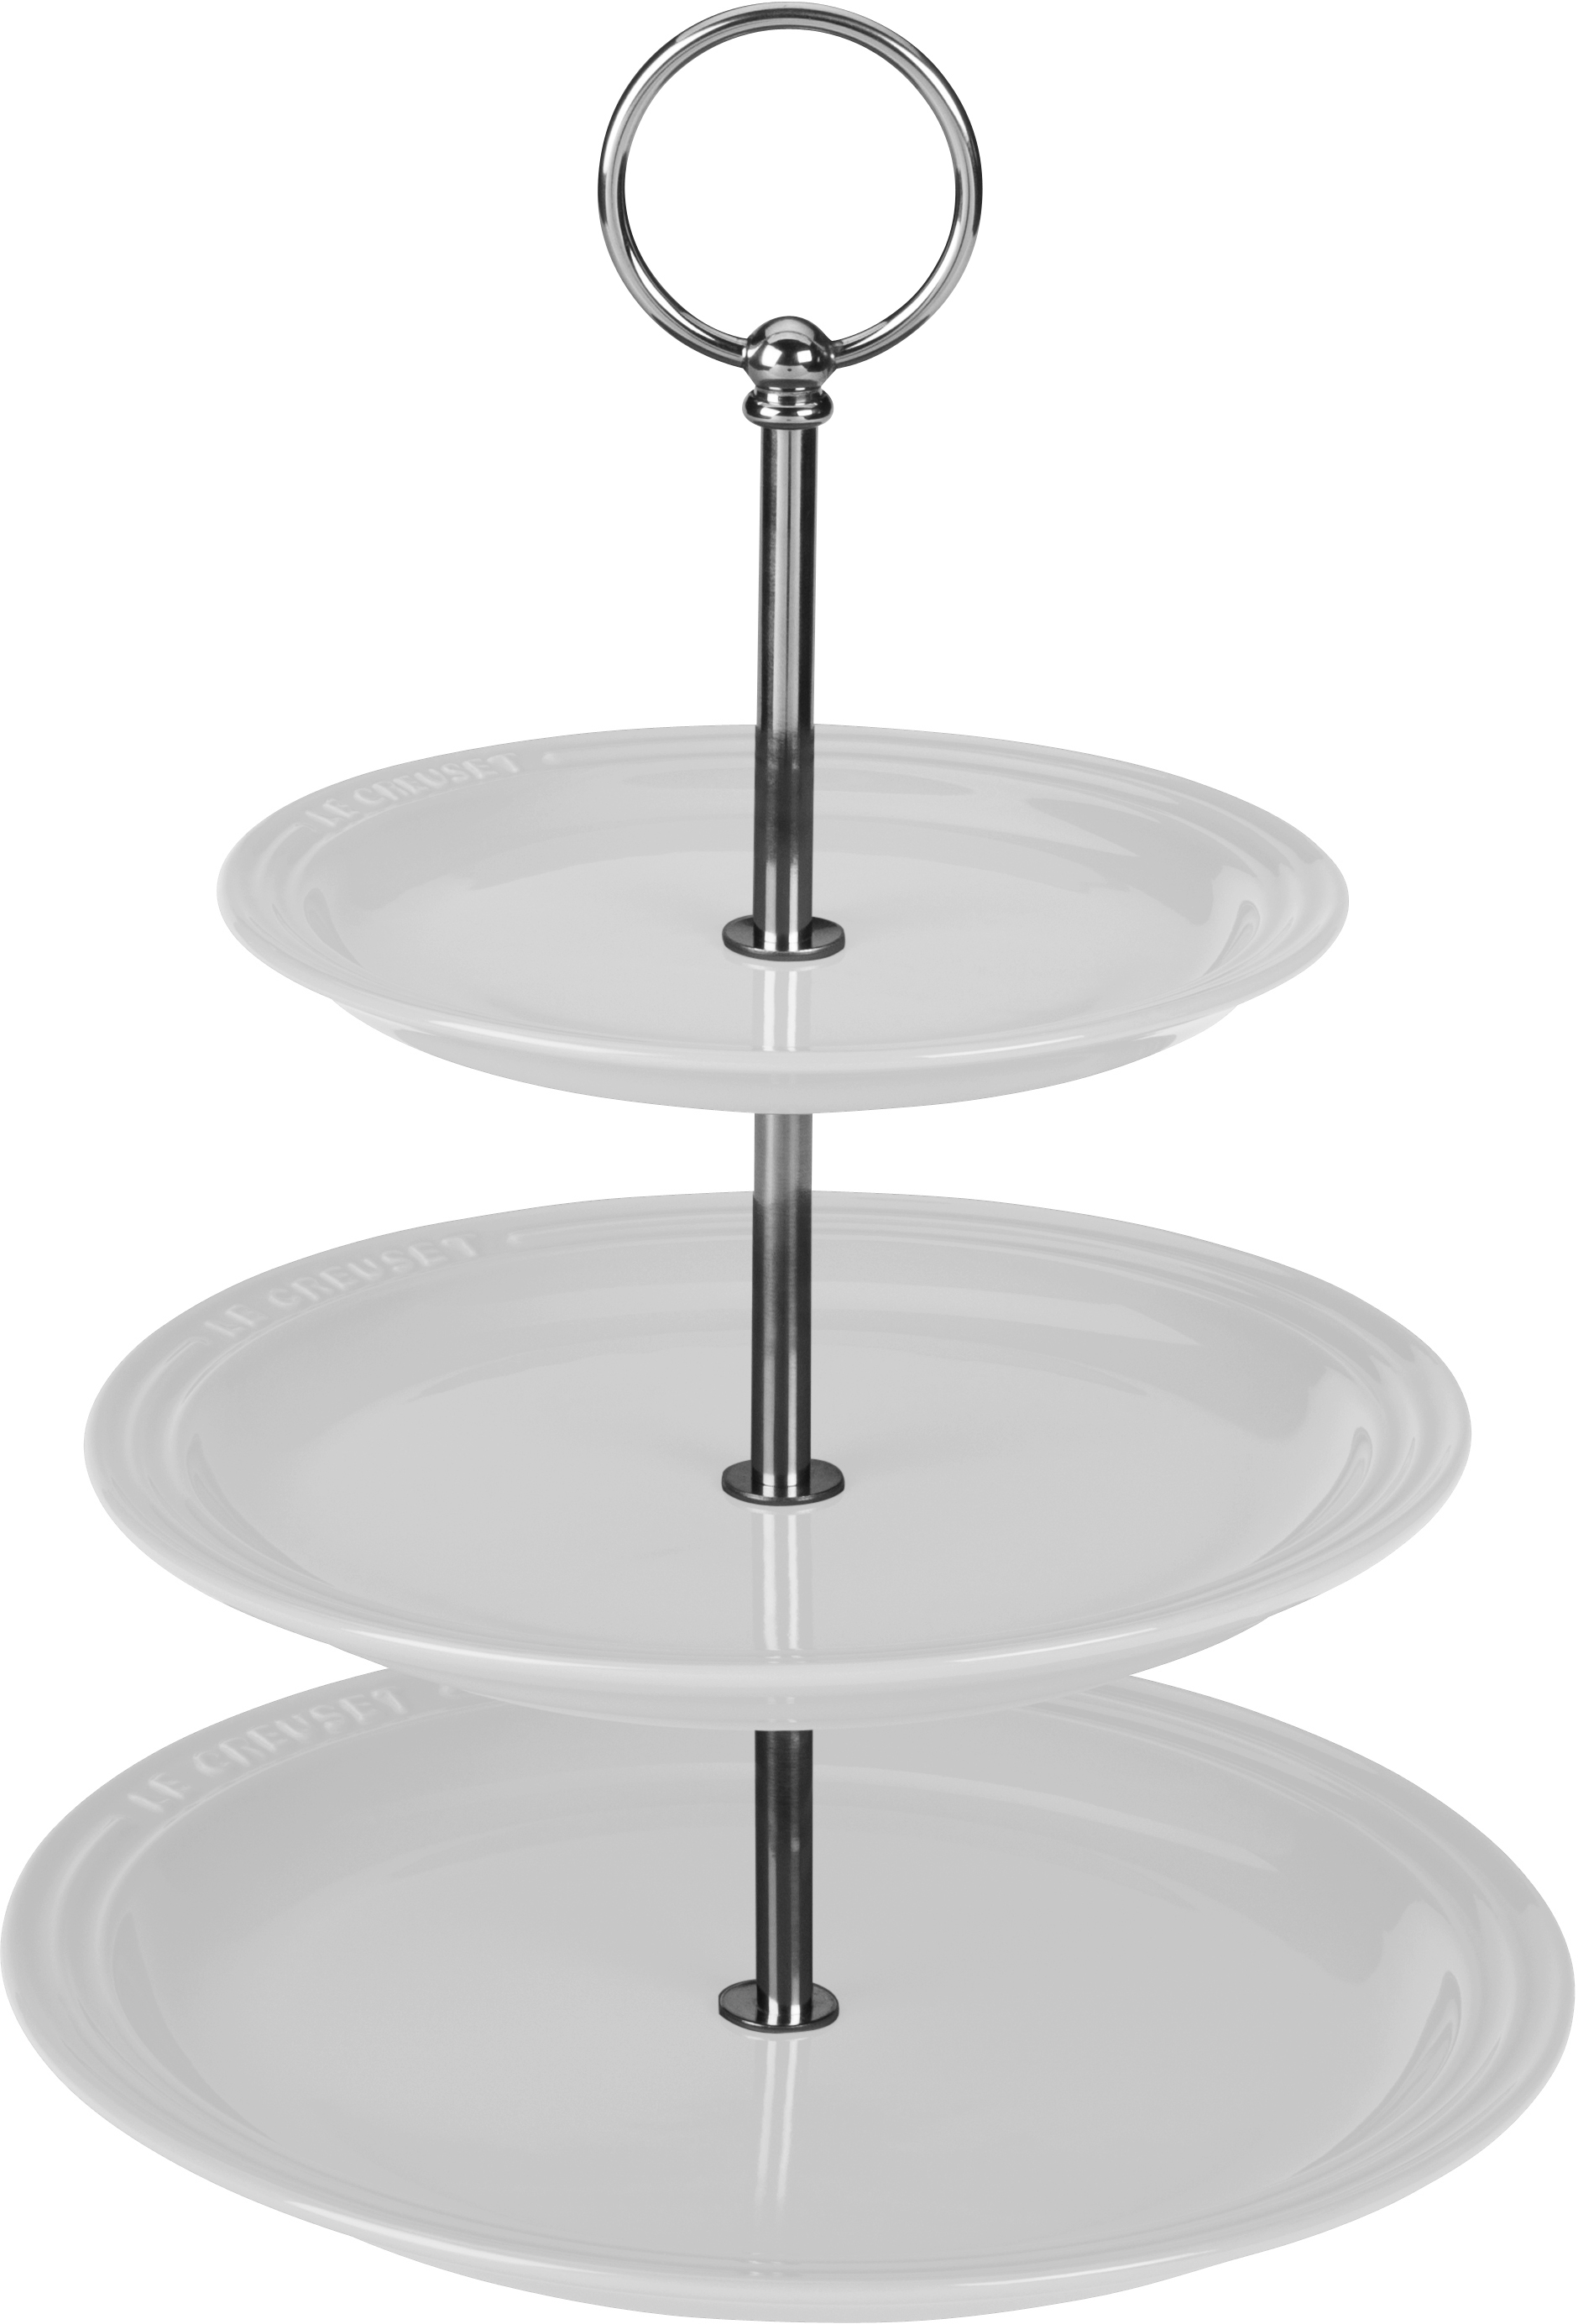 Le Creuset White Stoneware 14.5 Inch 3-Tiered Serving Stand